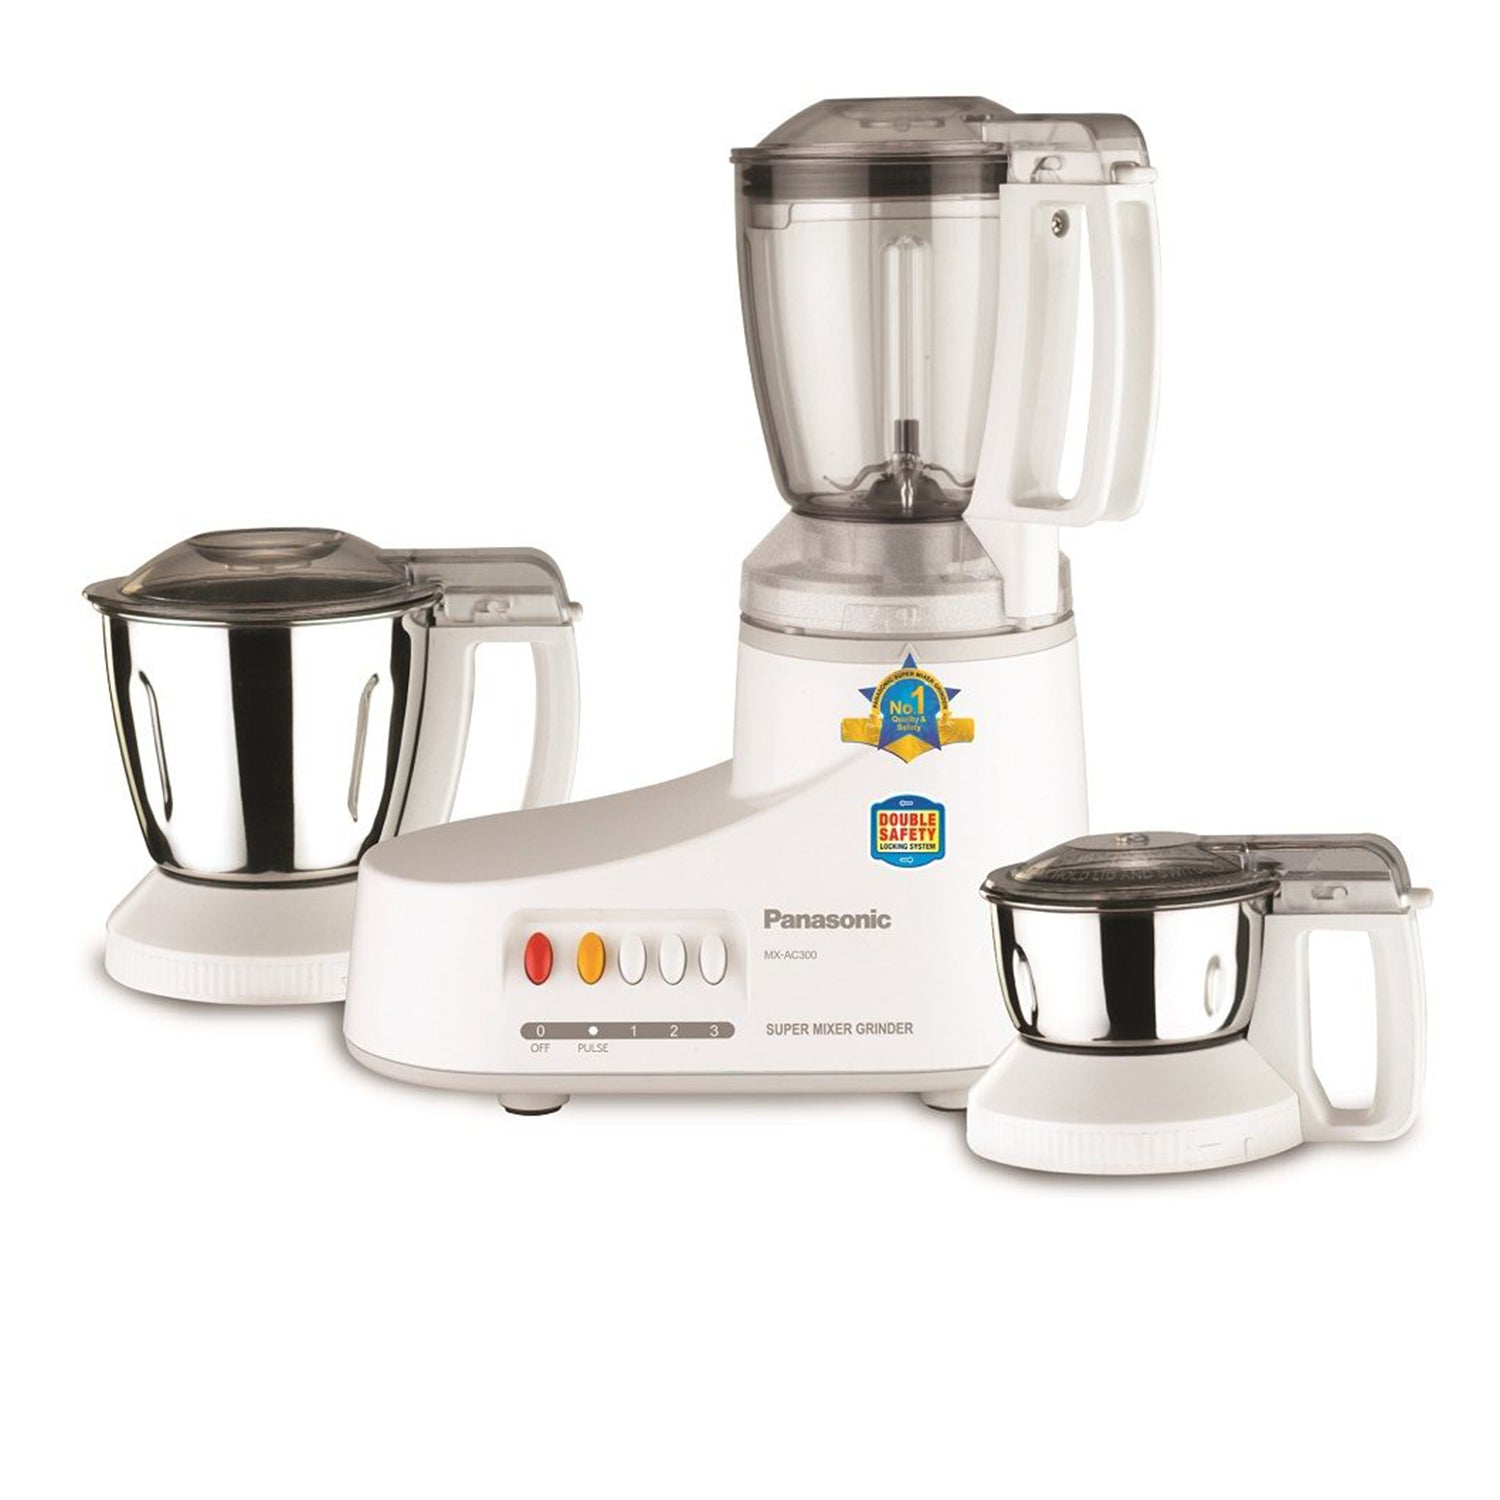 1000W 6 in 1 Mixer Grinder